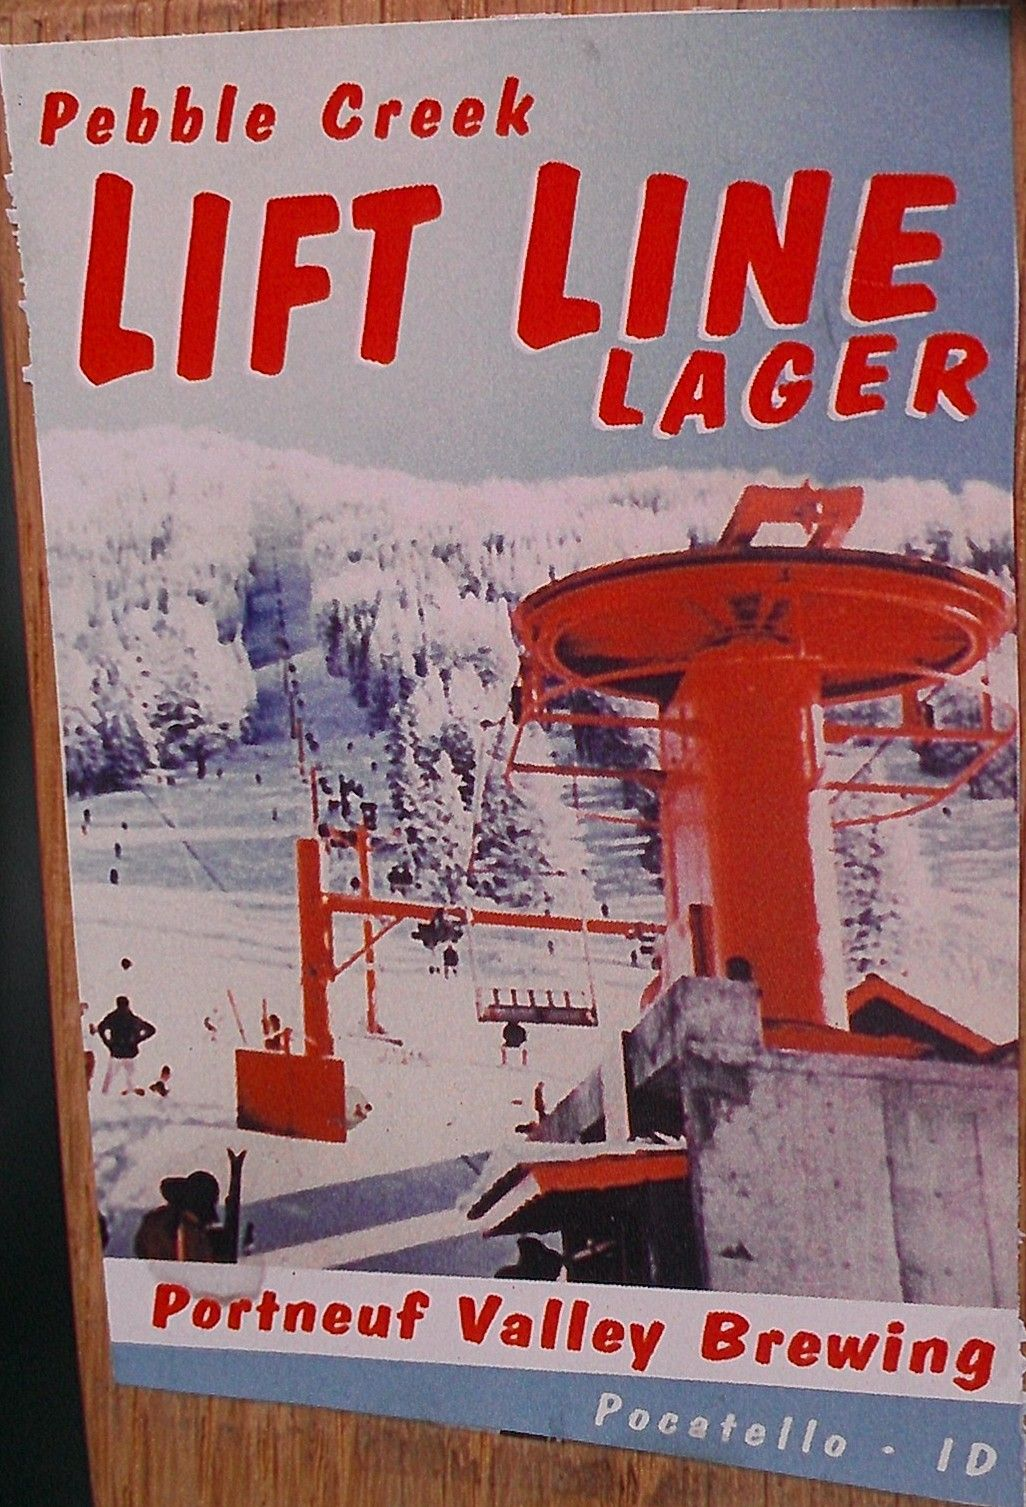 Love The Old Days Pic Of The Lift At Skyline Ski Area Before It Was Renamed To Pebble Creek Vintage Ski Posters Beer Poster Ski Posters